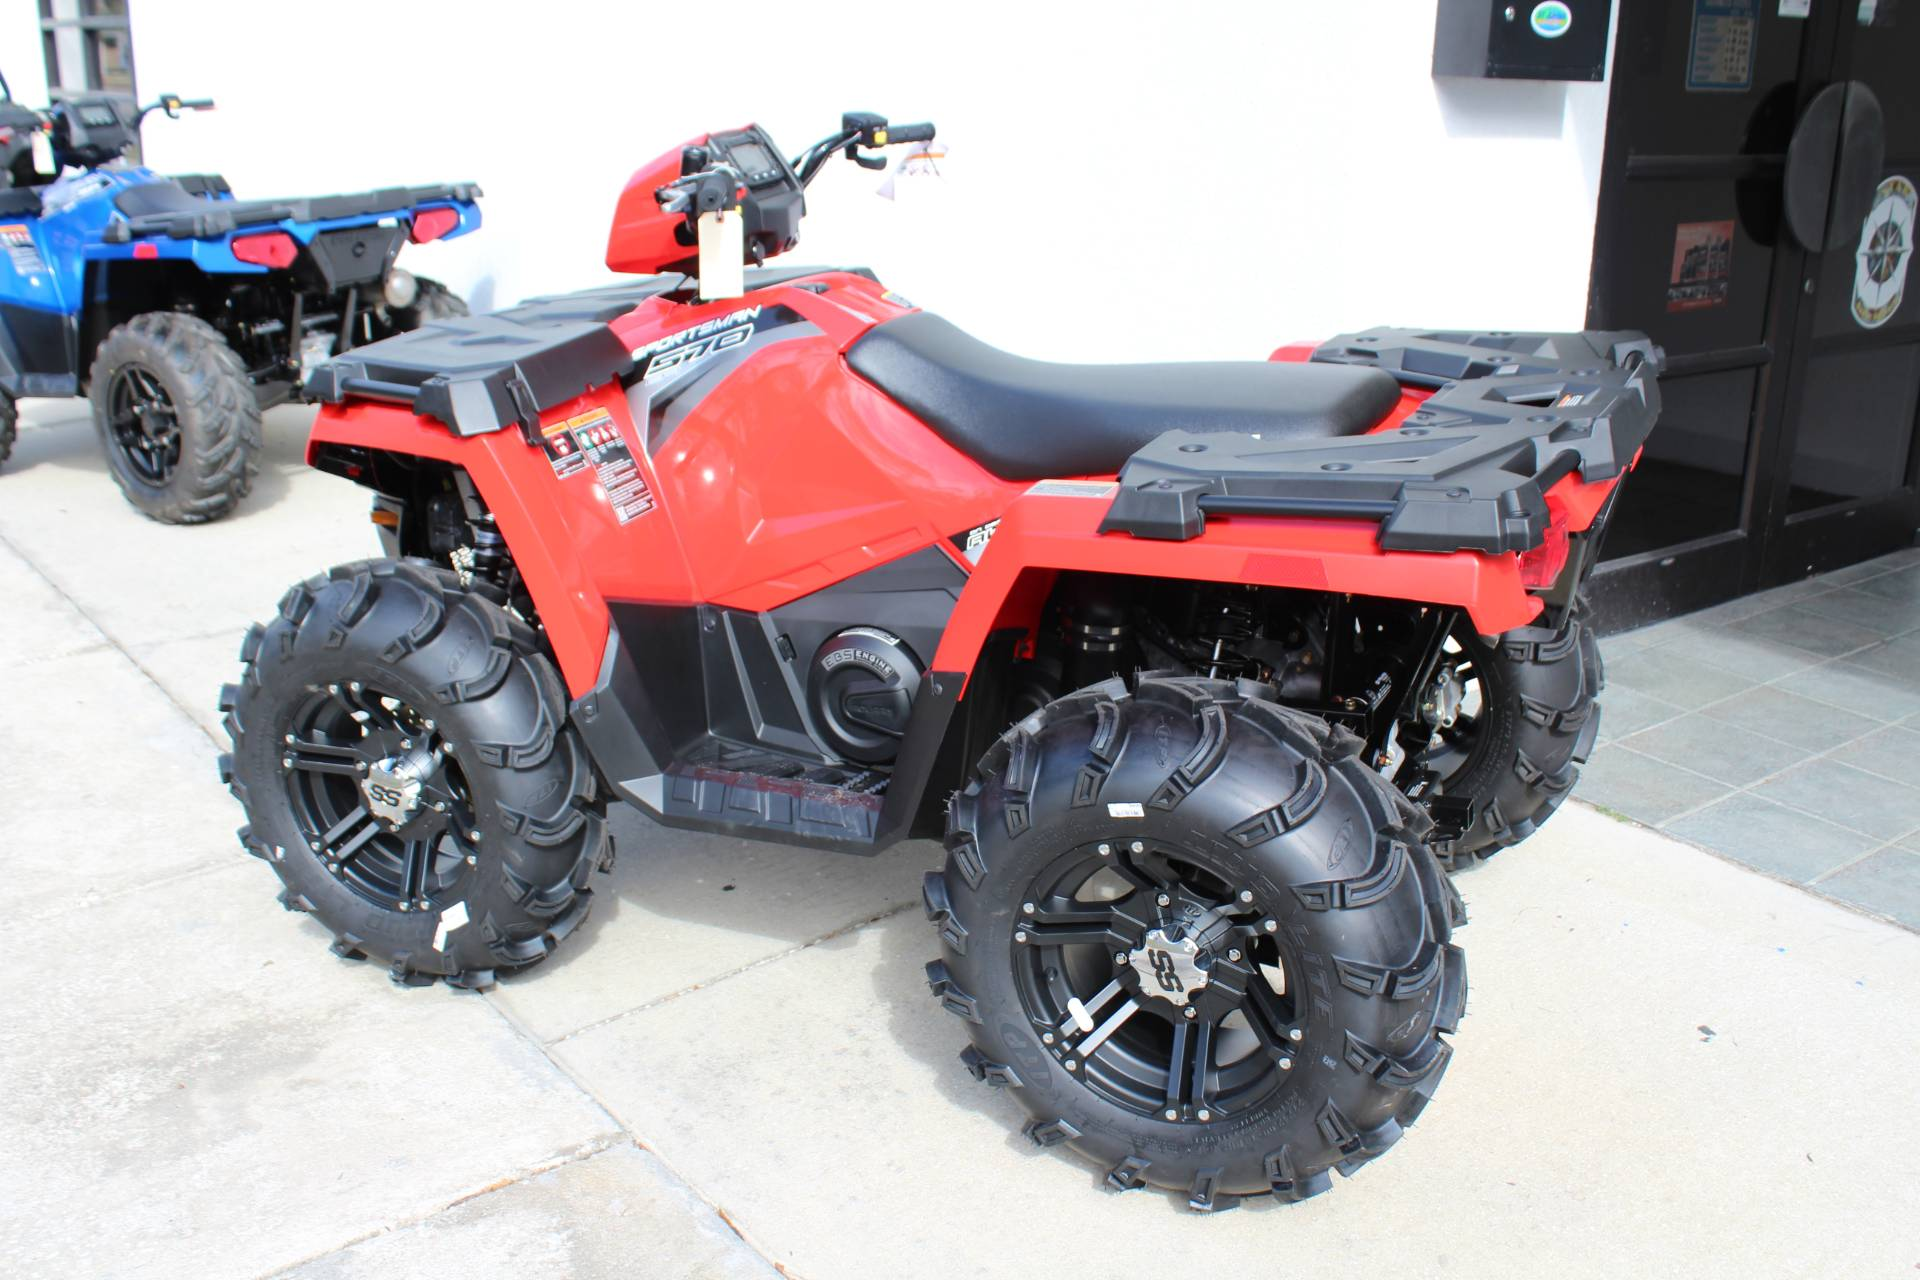 2018 polaris sportsman 570 eps atvs palatka florida n a. Black Bedroom Furniture Sets. Home Design Ideas